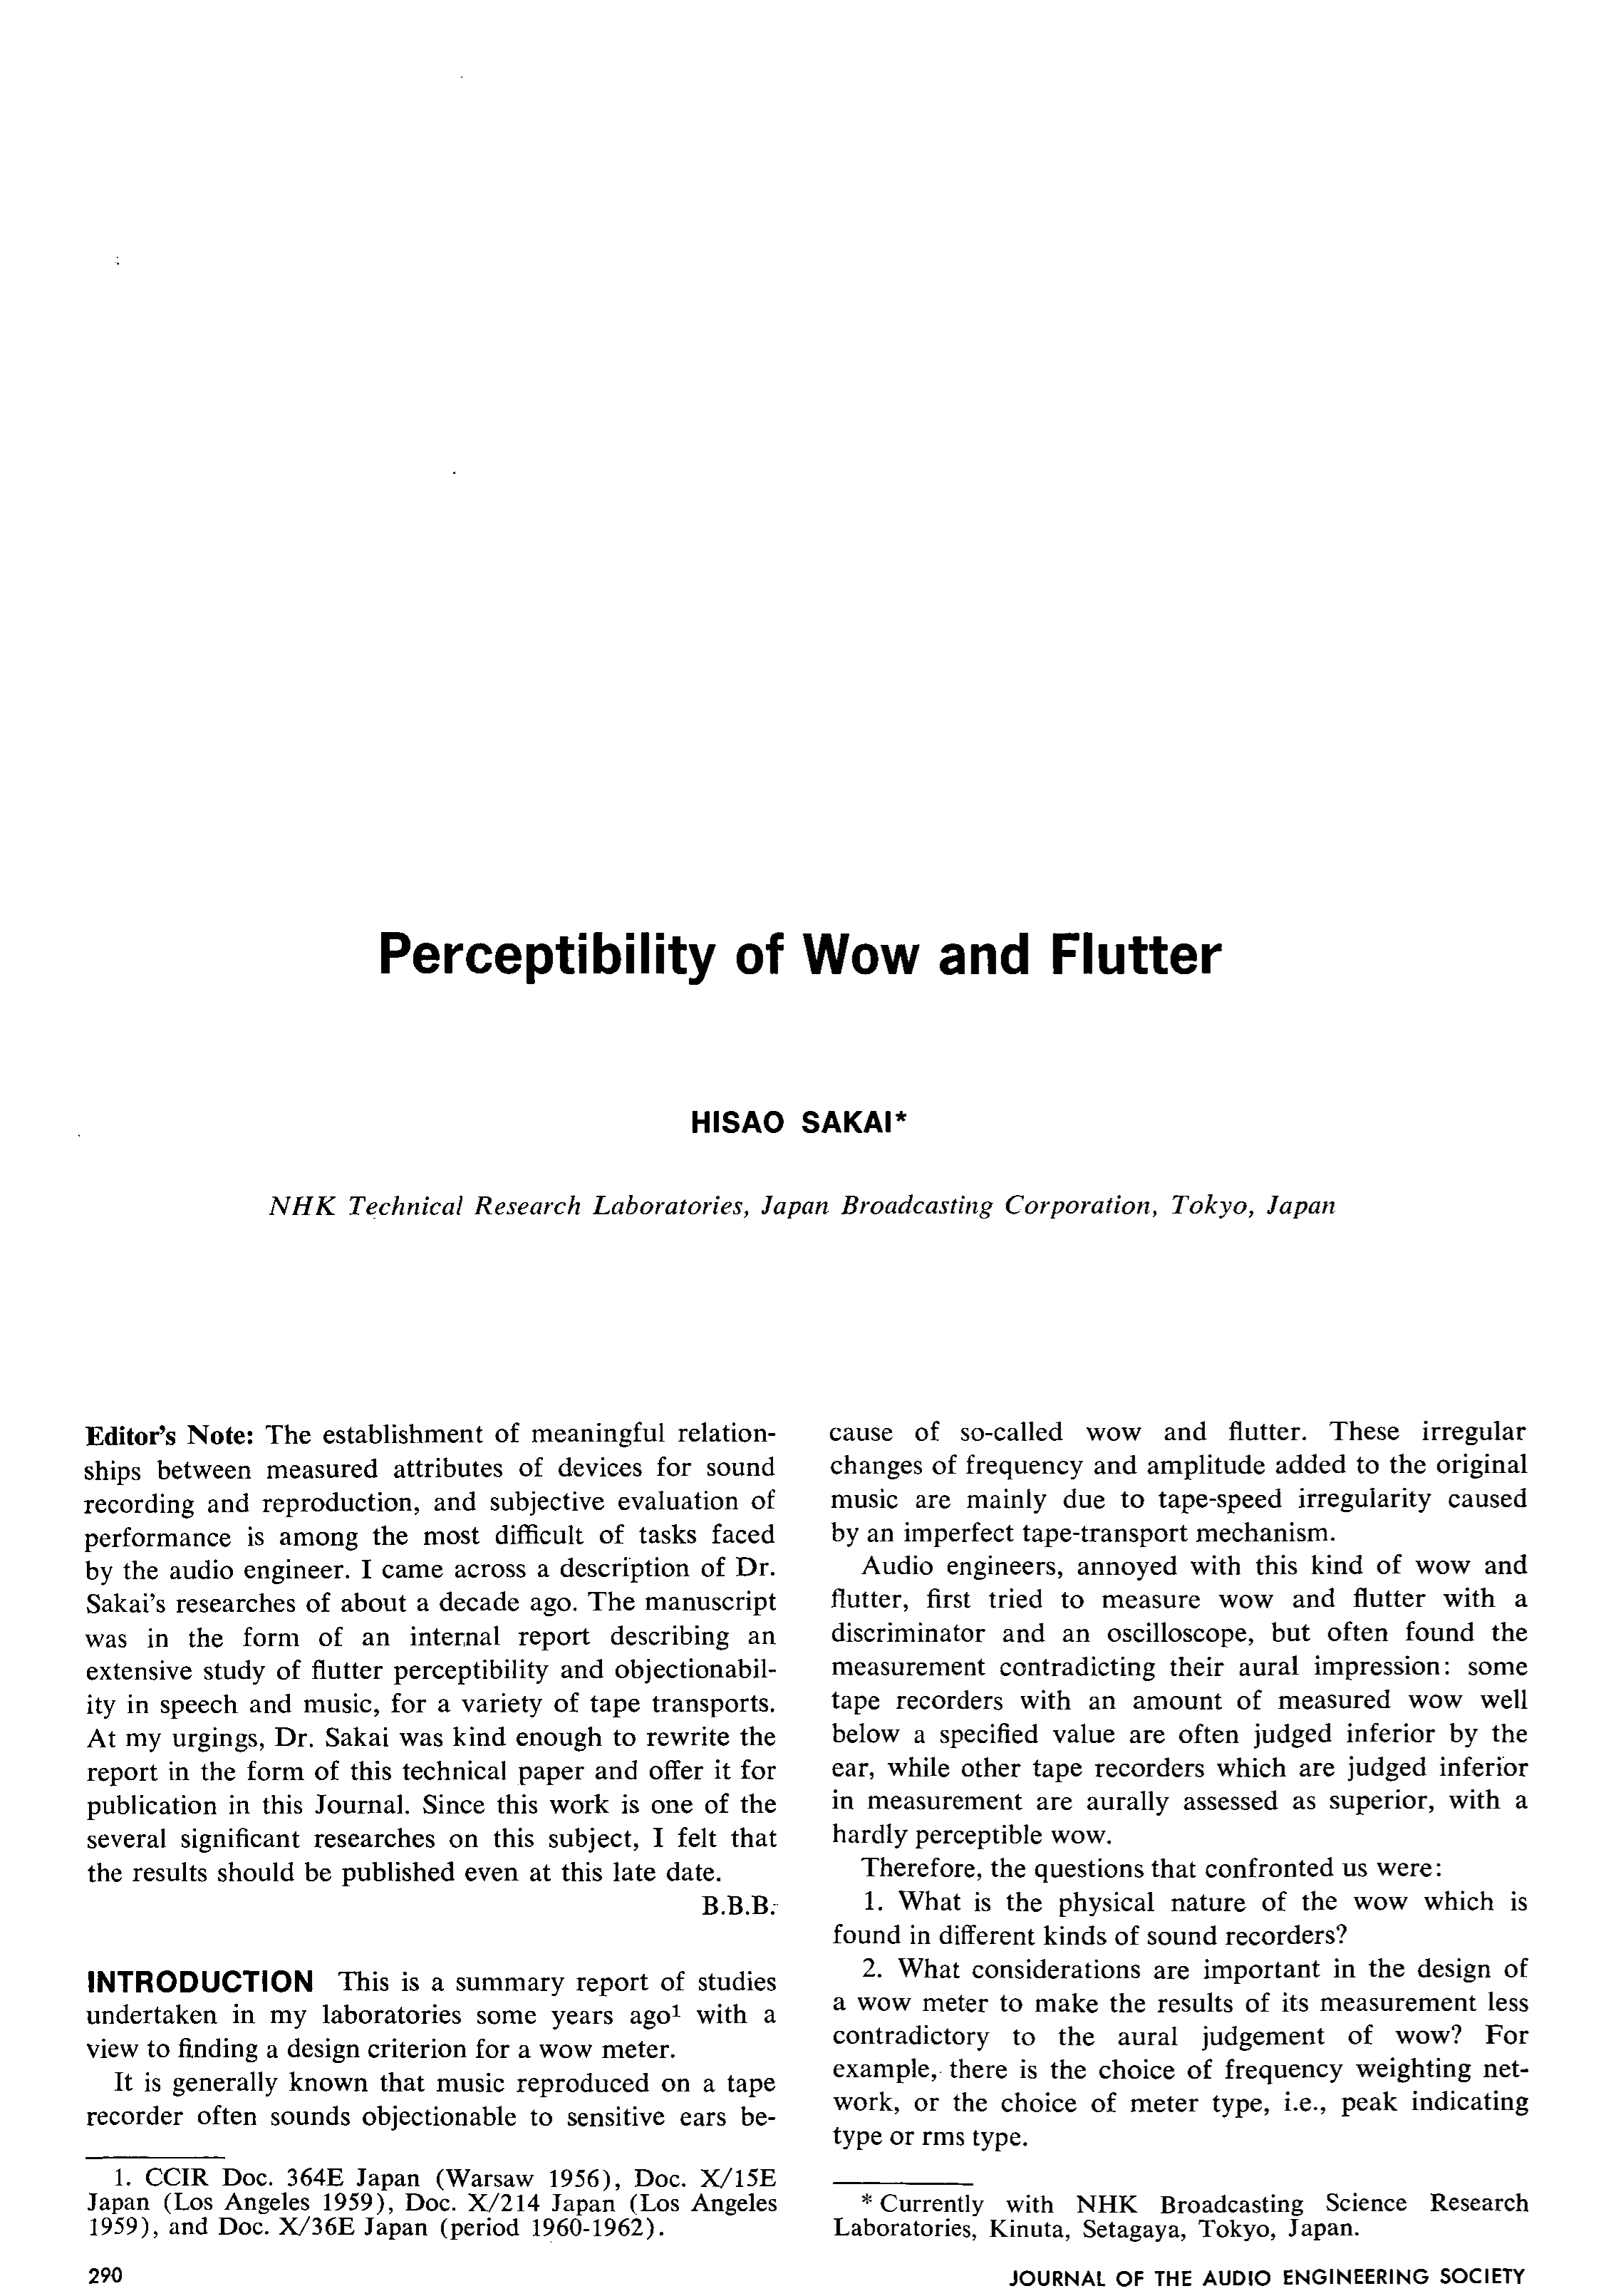 AES E-Library » Perceptibility of Wow and Flutter